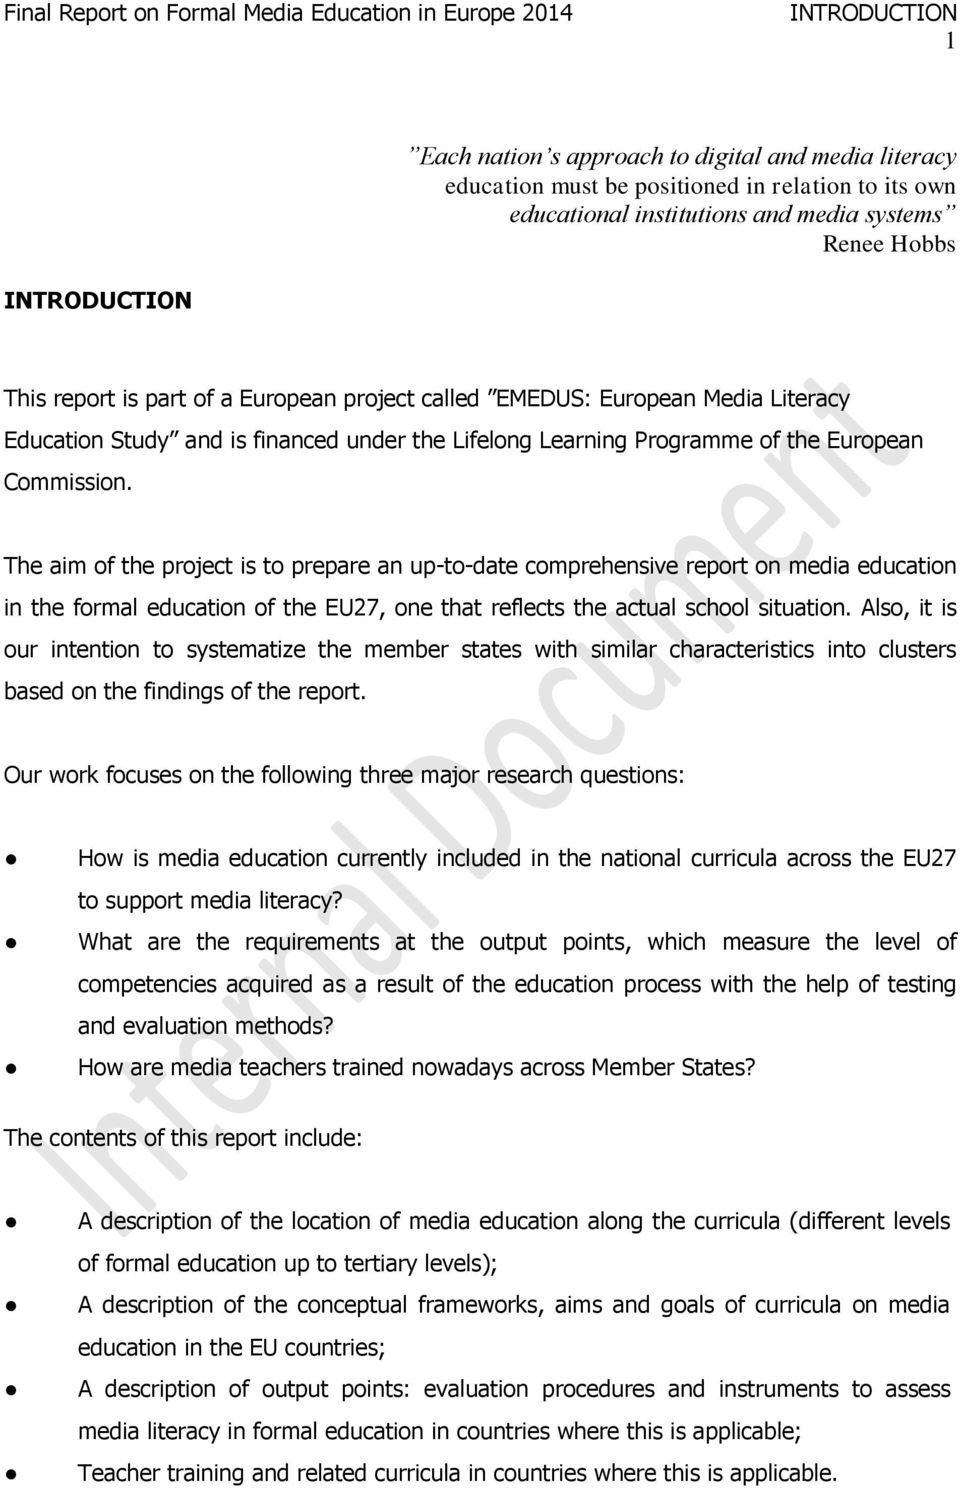 The aim of the project is to prepare an up-to-date comprehensive report on media education in the formal education of the EU27, one that reflects the actual school situation.